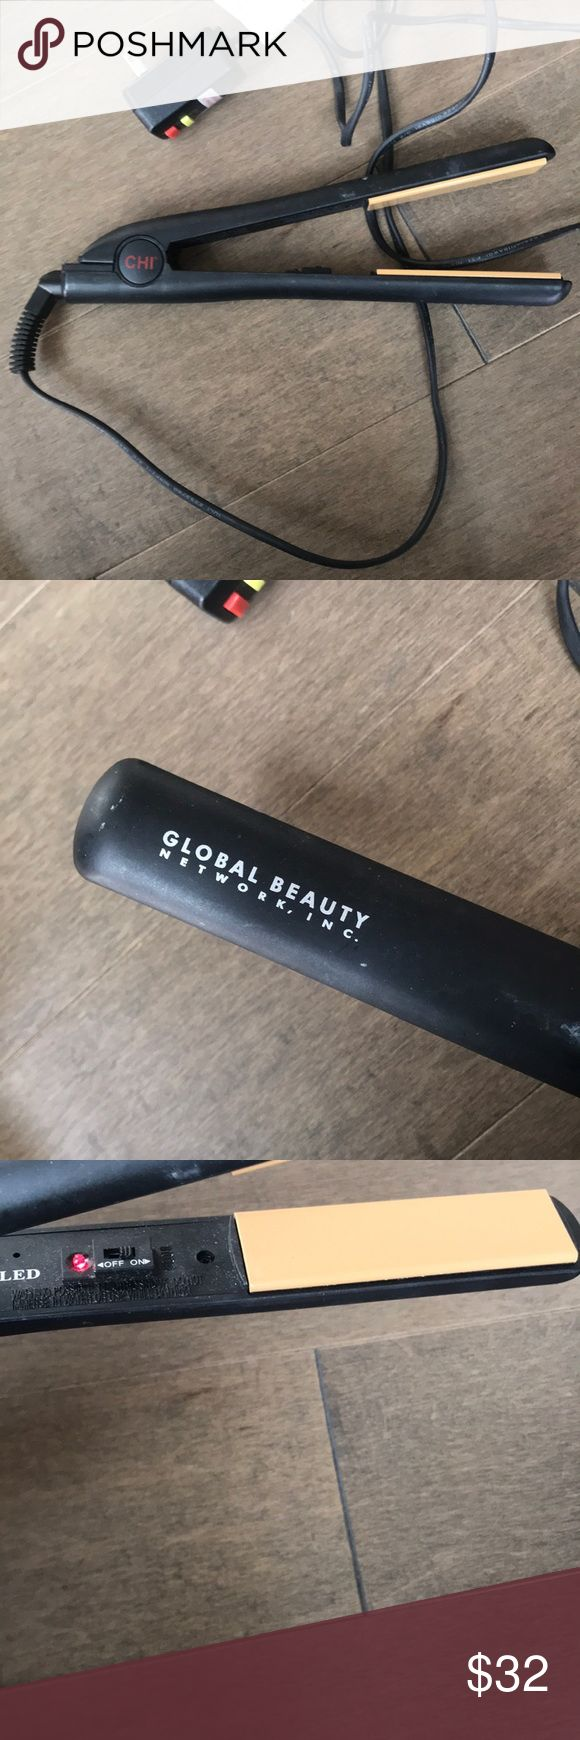 Chi global beauty flatiron hair straightener Chi hair straightener. Heats up super quickly. I've had short hair for a while so I figured it was time to get rid of it. Great condition! Will clean before shipping. CHI Accessories Hair Accessories #hairstraightener